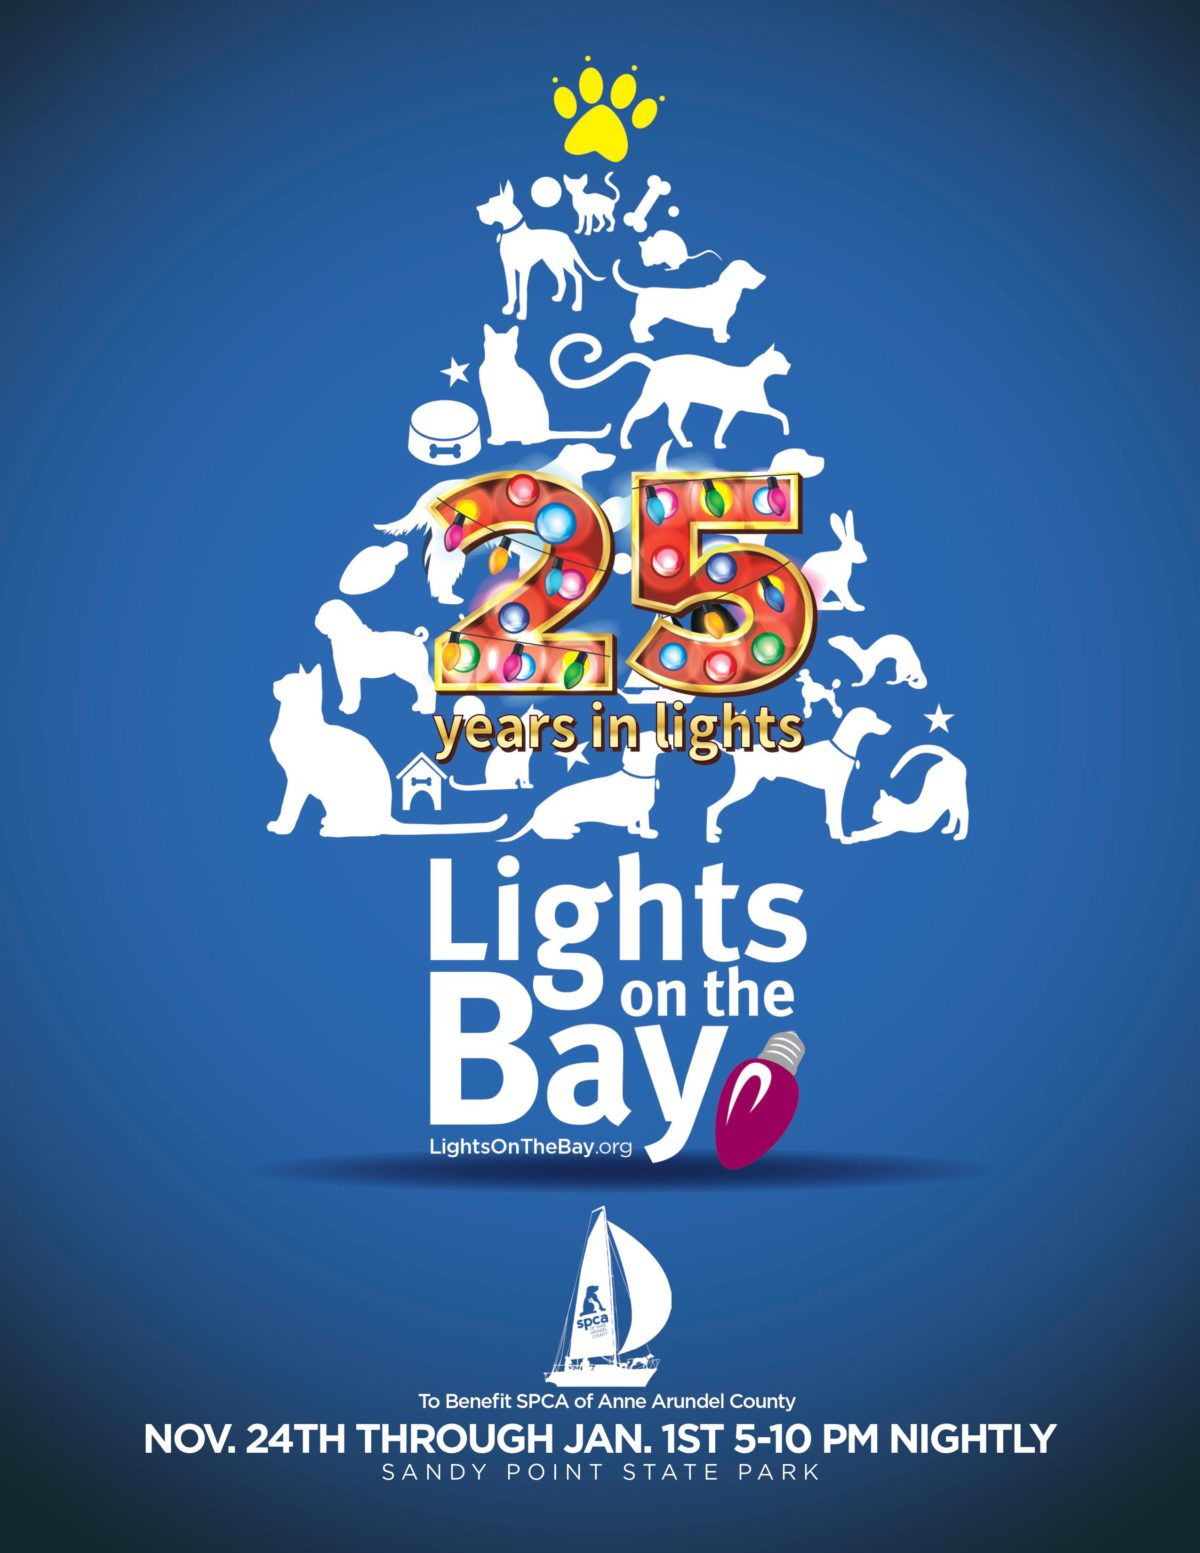 Lights On The Bay-11/24 to 01/01